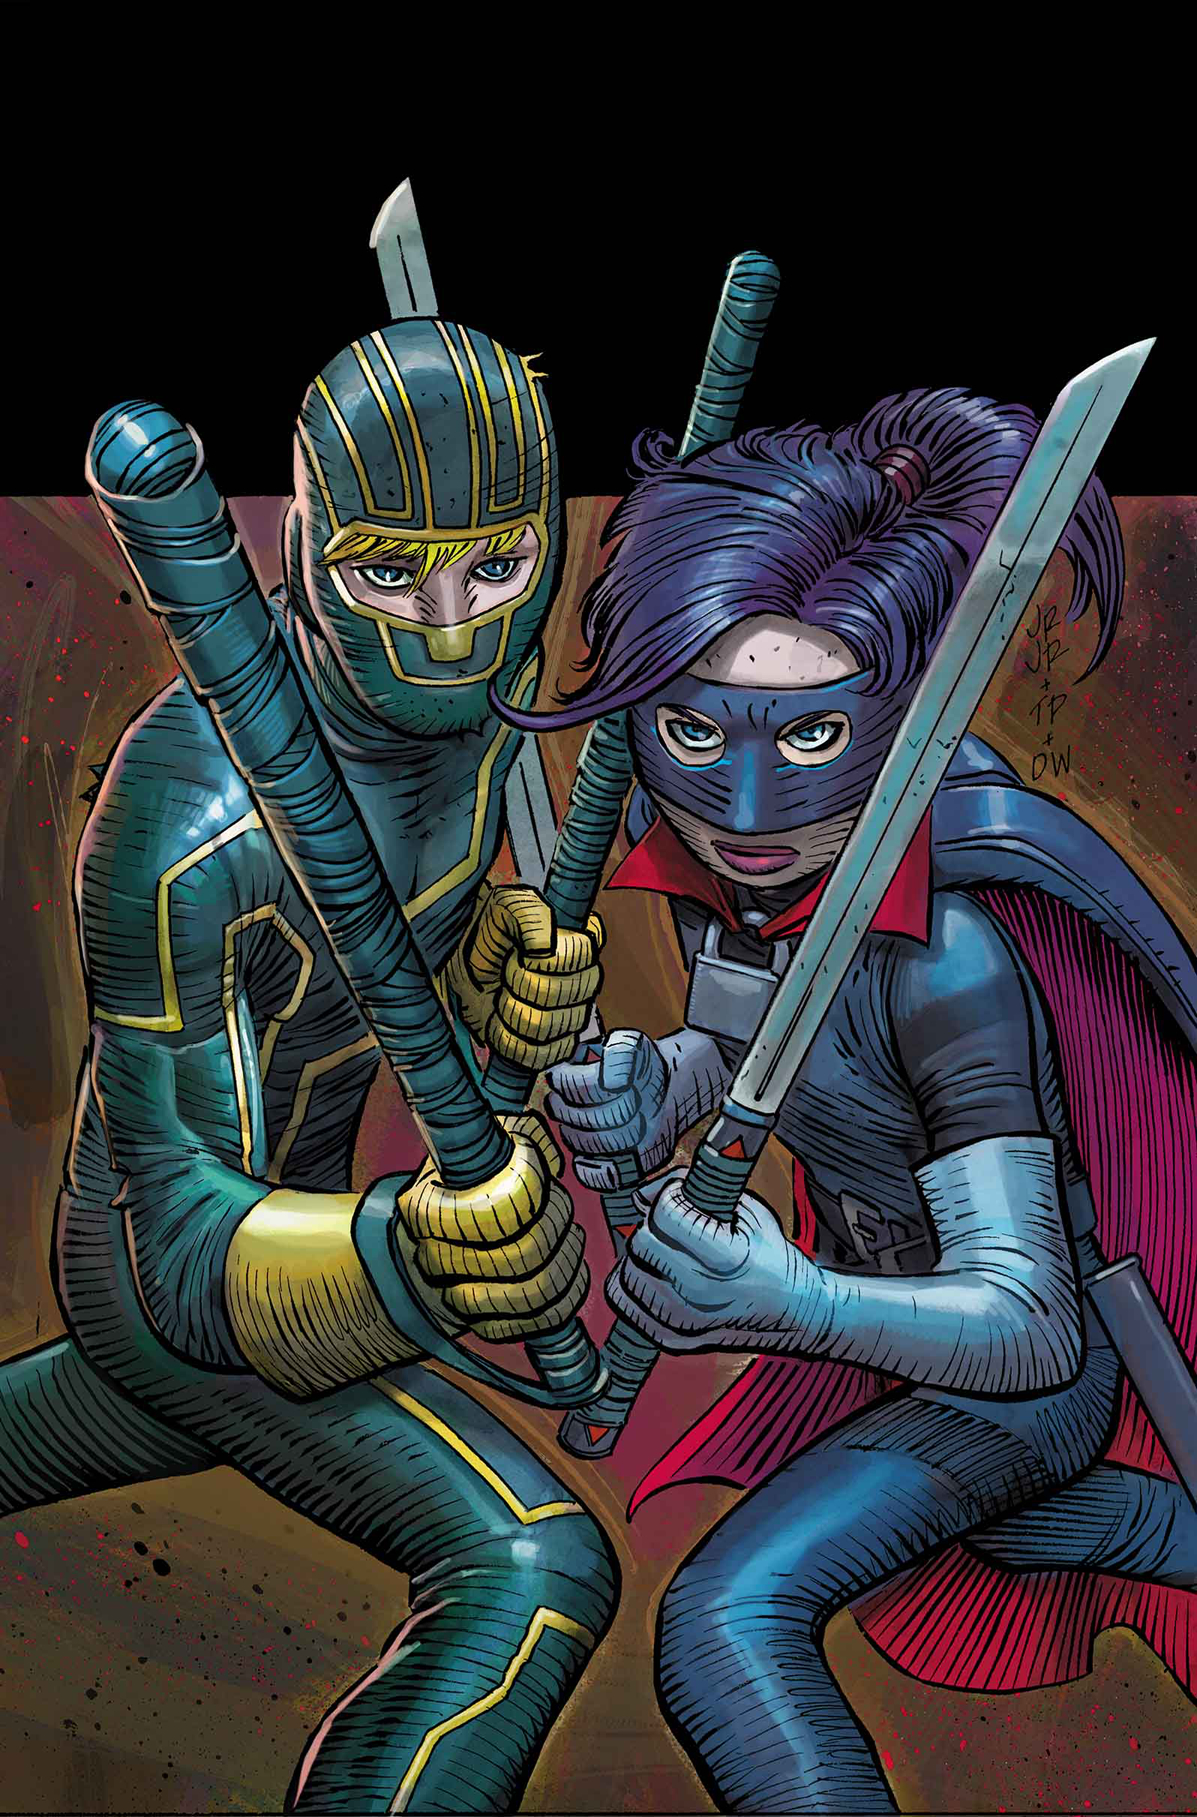 KICK-ASS 3 #8 (OF 8) (MR)